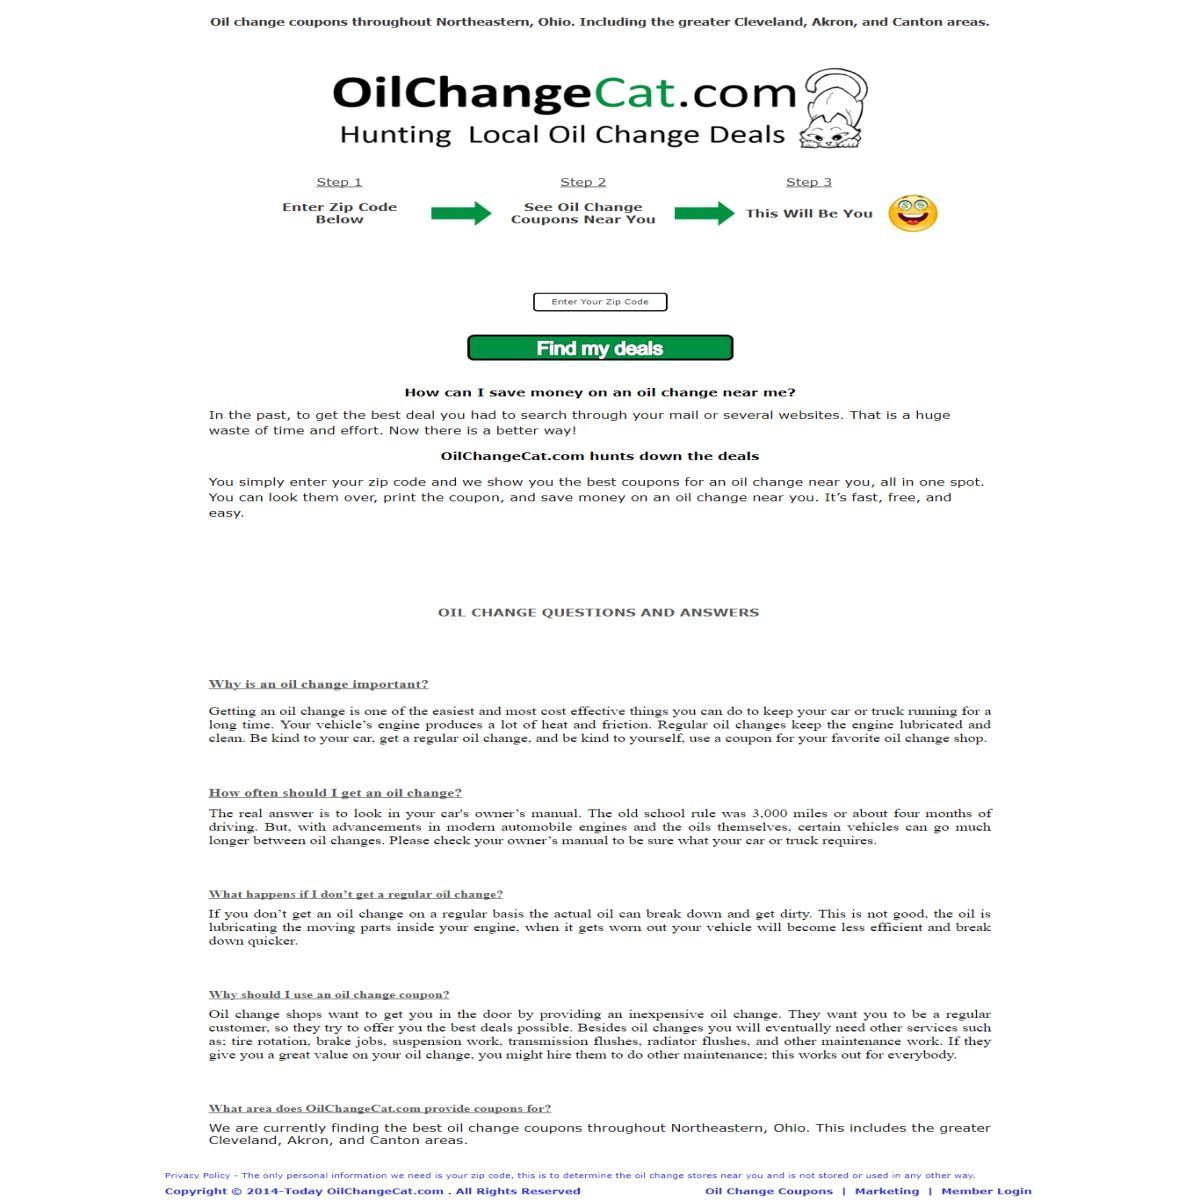 Oil change cat are currently finding the best oil change coupons oil change cat are currently finding the best oil change coupons throughout northeastern ohio you simply enter your zip code and they show you the best solutioingenieria Choice Image